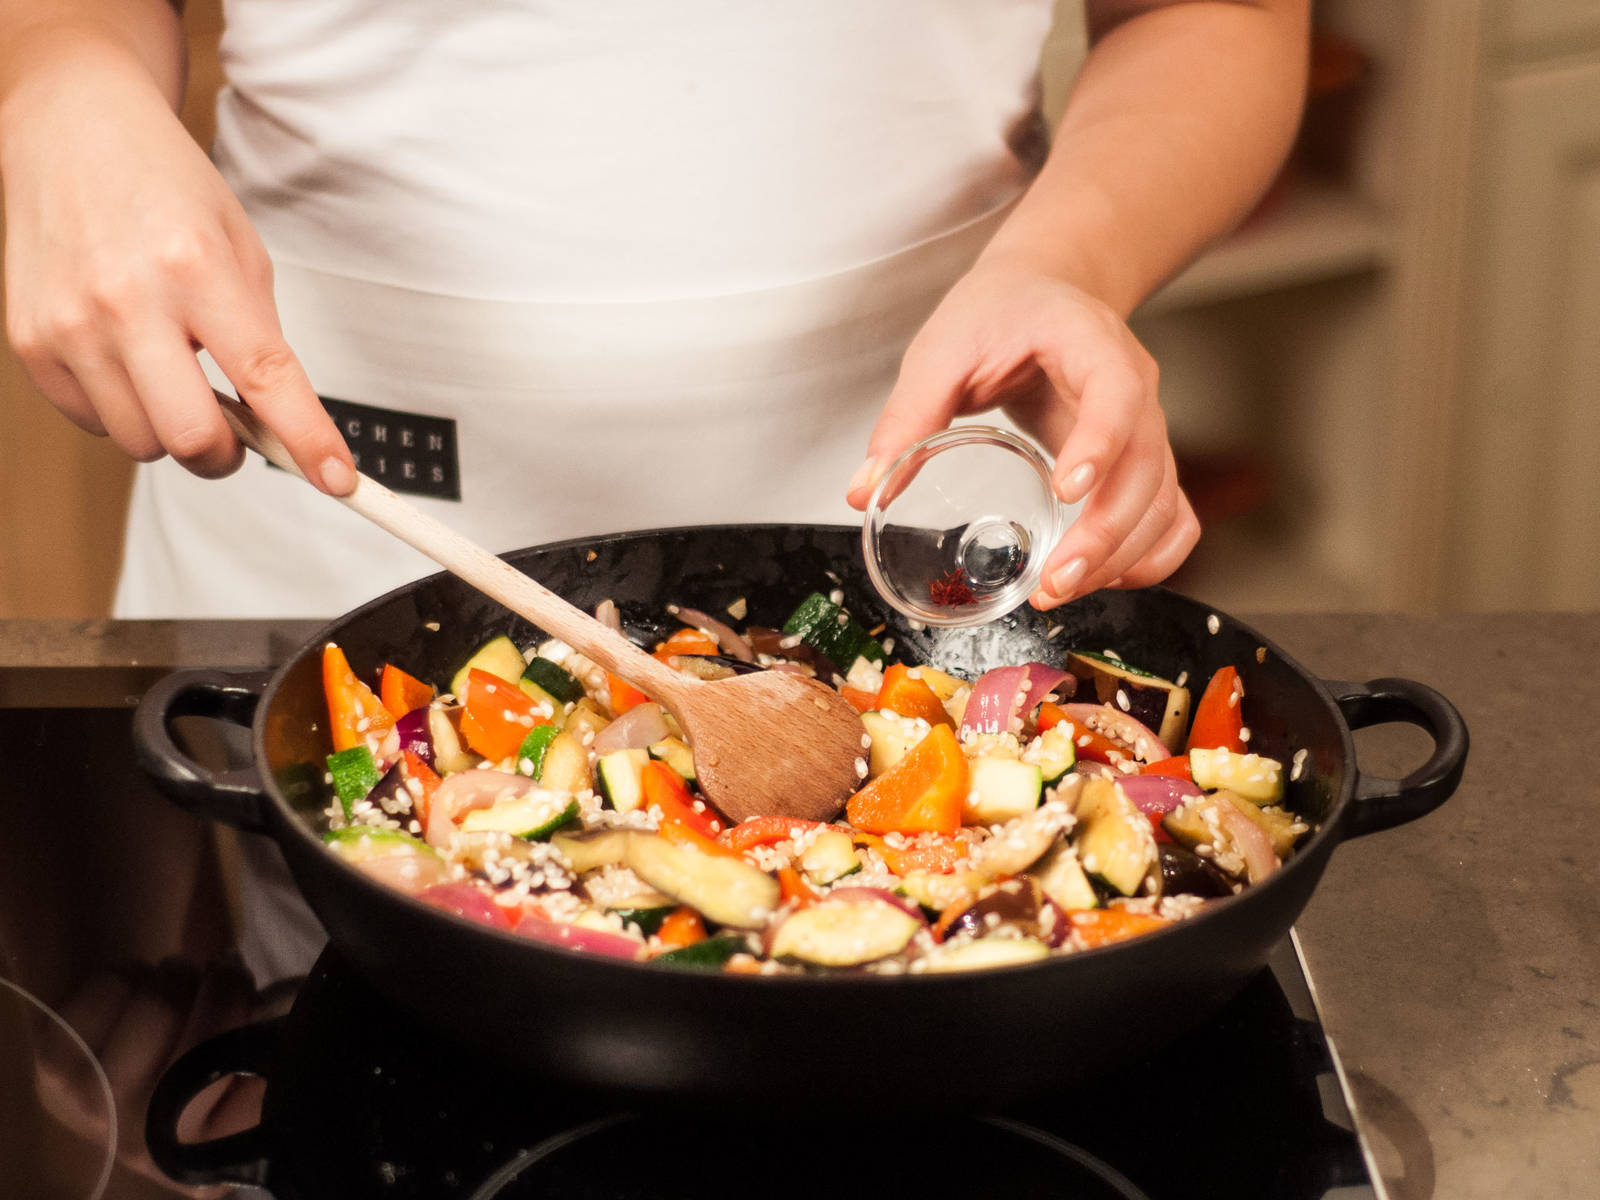 Add saffron to pan, stir thoroughly to combine, and continue to sauté for approx. 1 – 2 min.